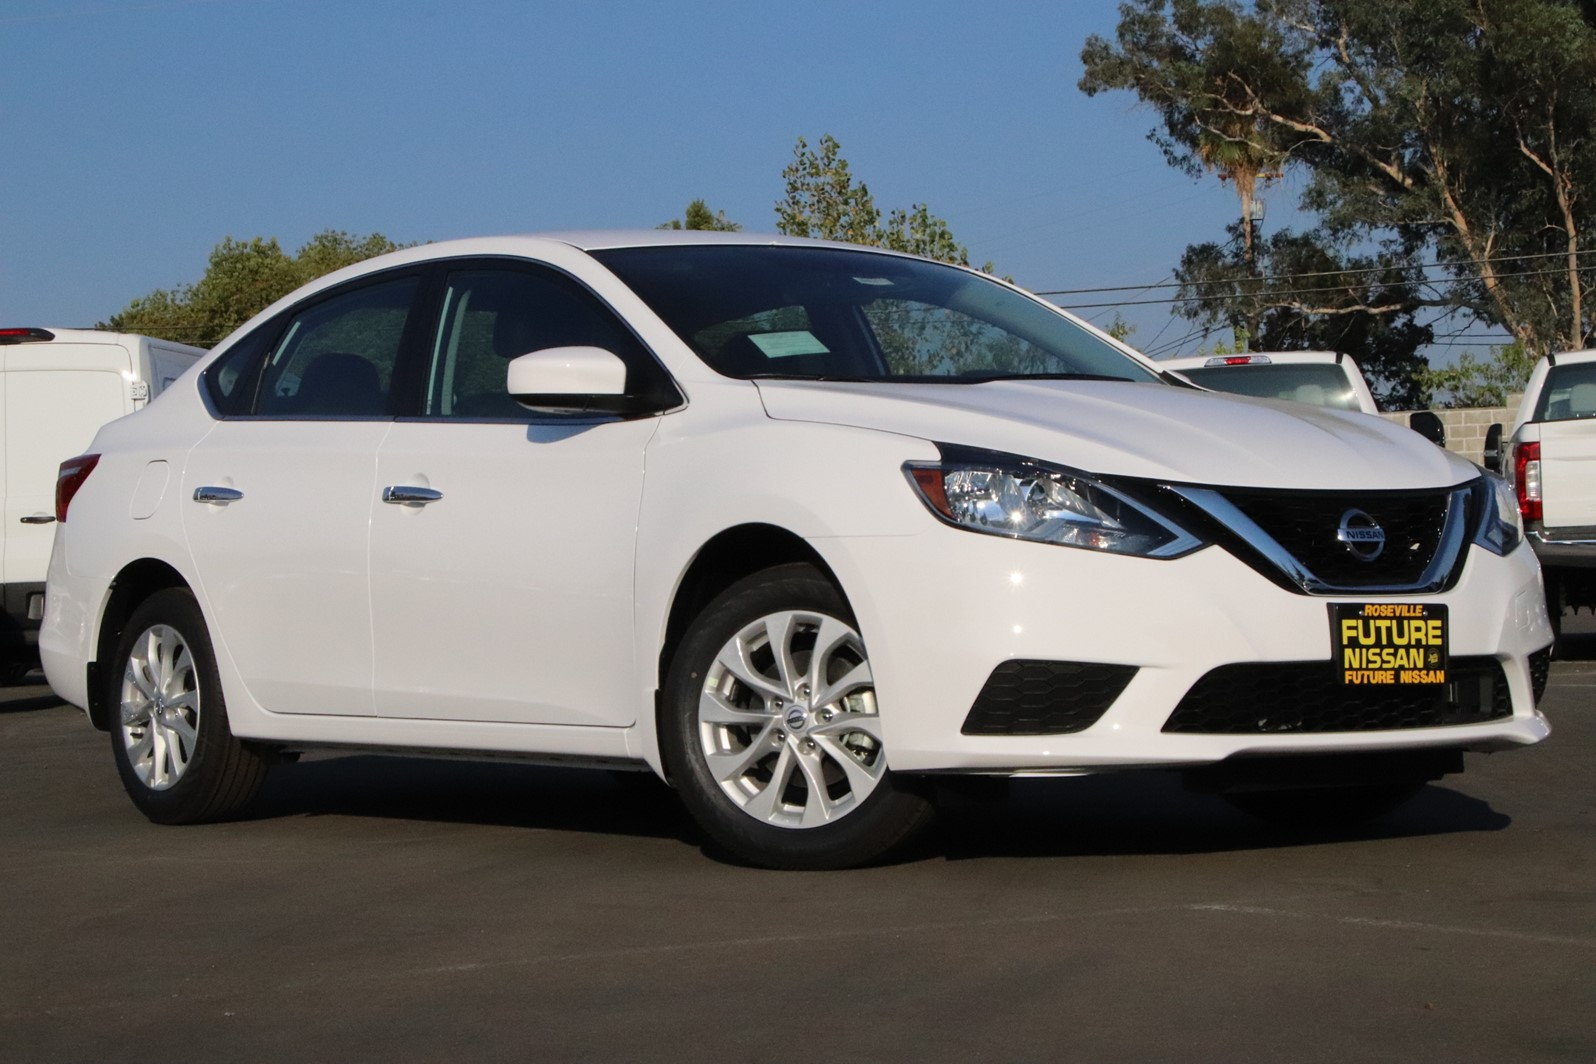 Nissan Sentra Owners Manual: Aluminum alloy wheels